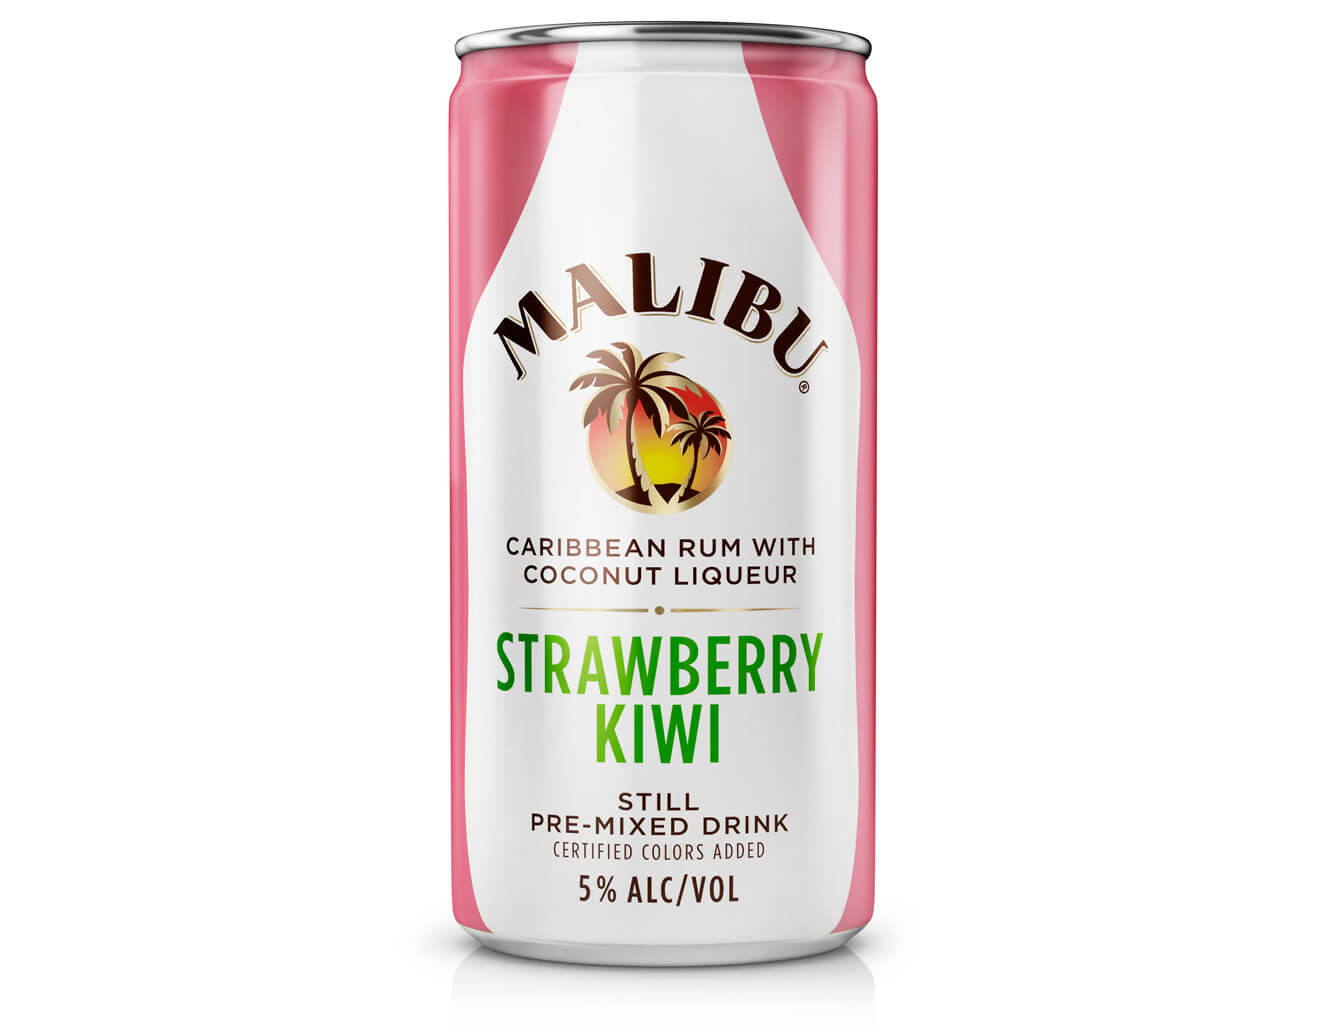 Malibu Launches Strawberry Kiwi In A Can